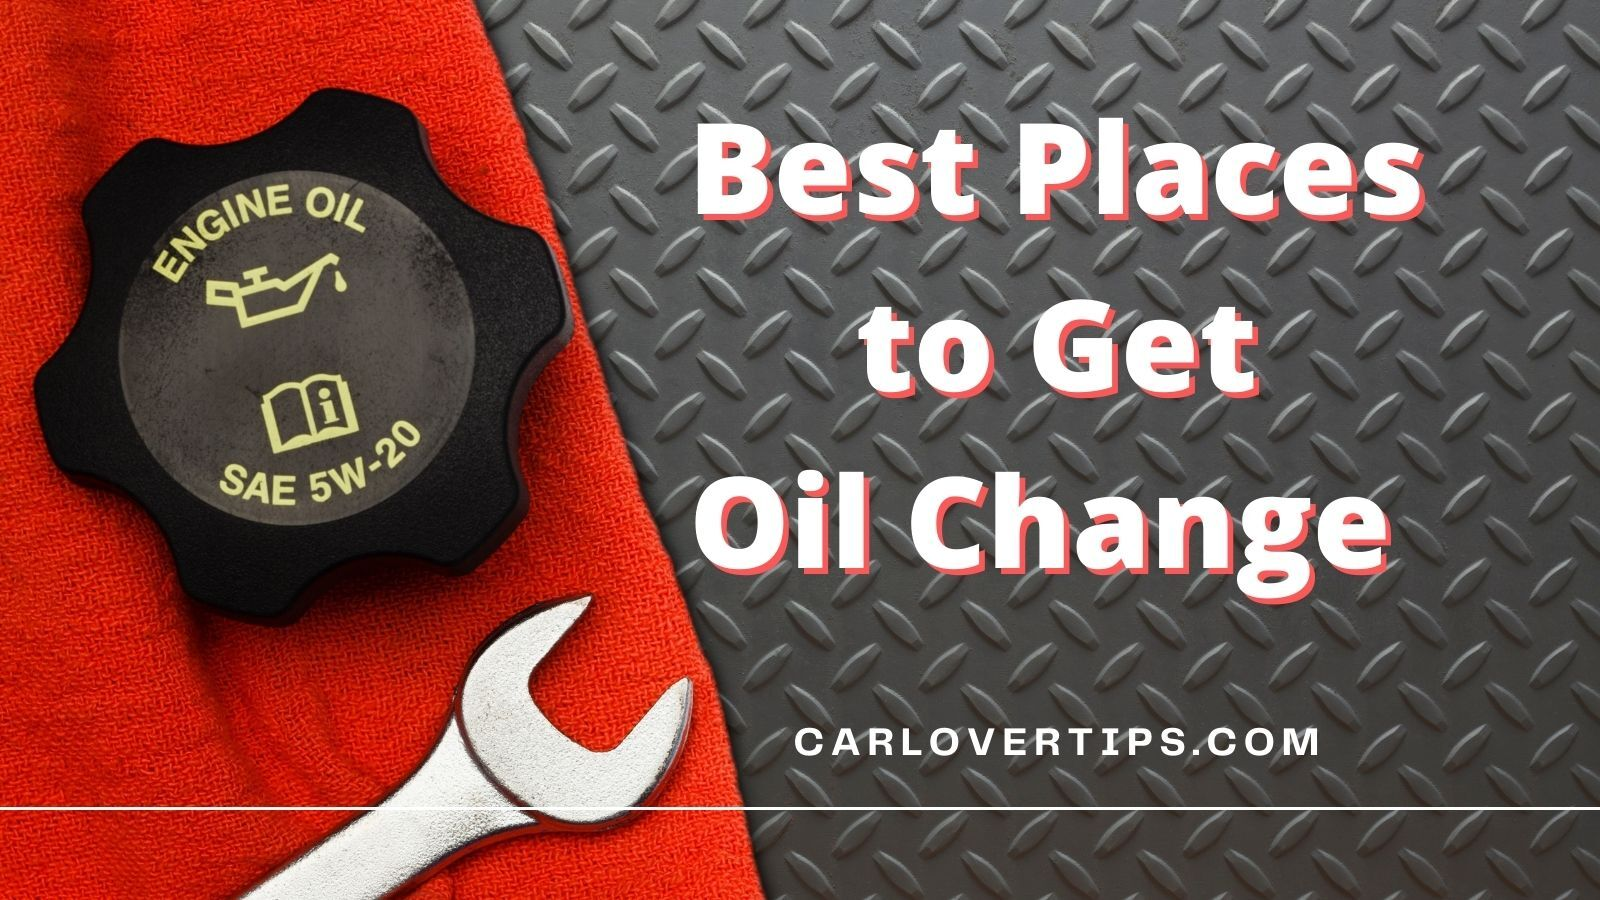 Best Places to Get an Oil Change